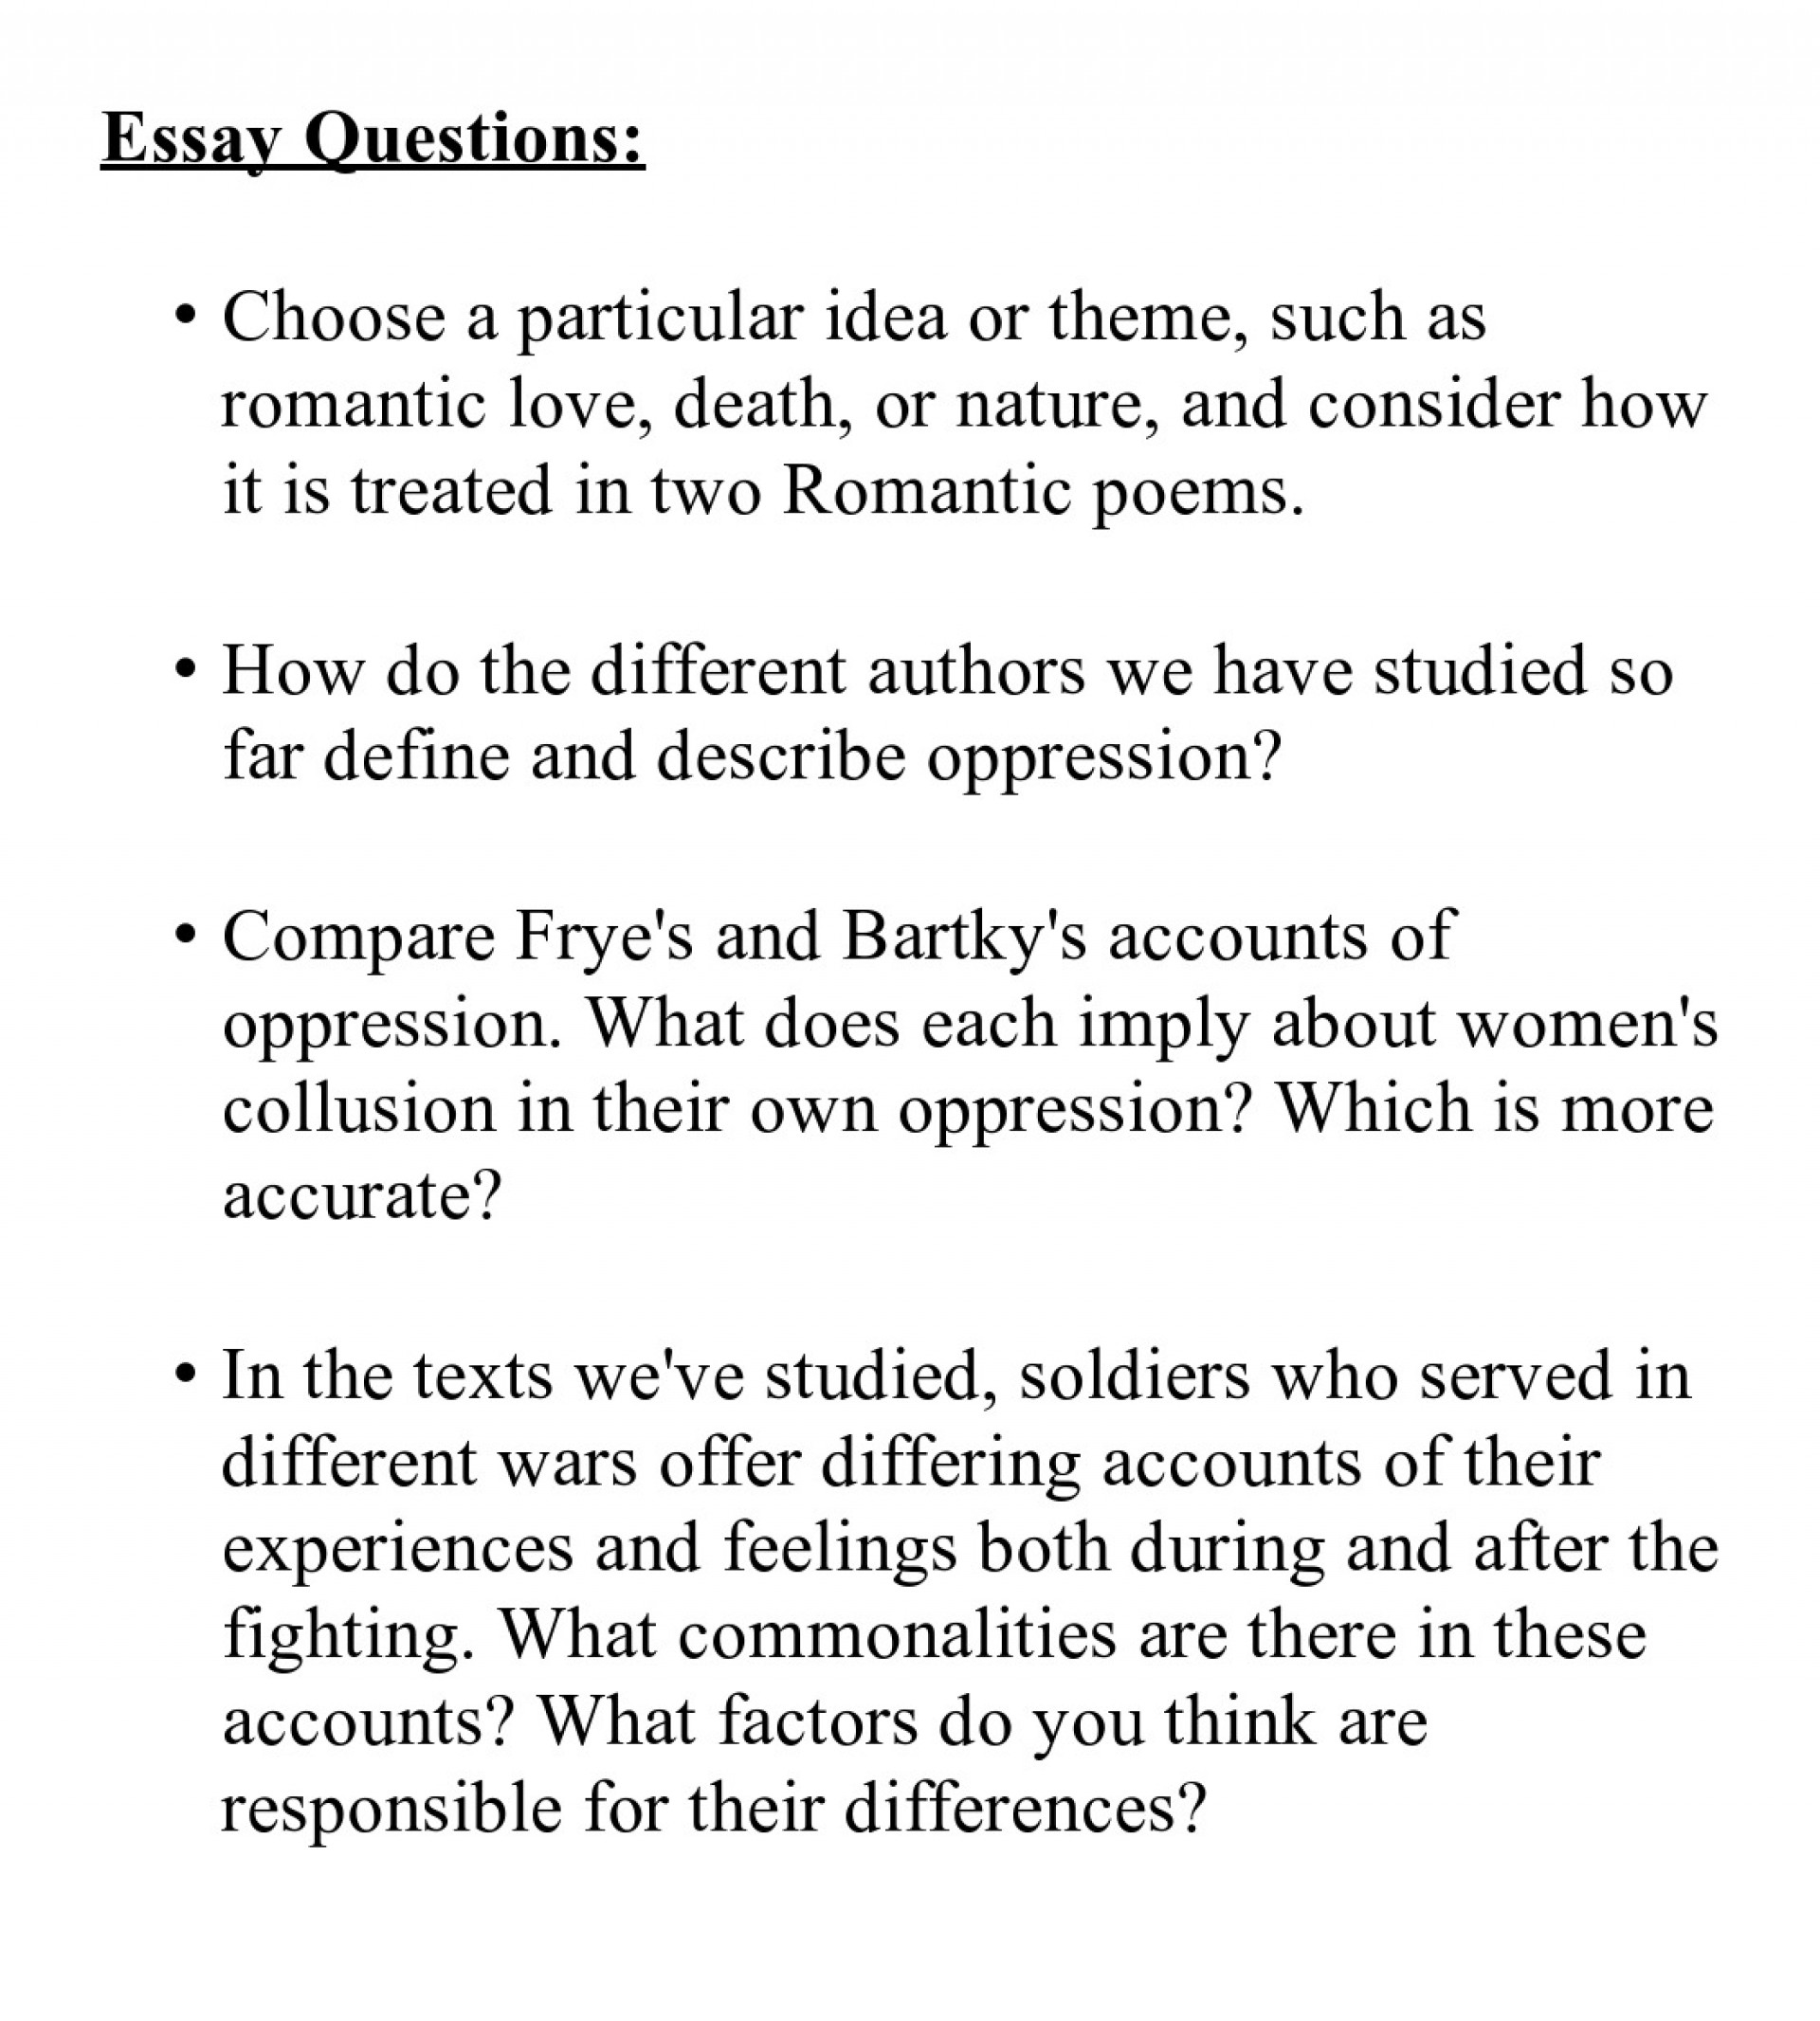 006 Essay Example Questions Topics To Write Stupendous About Best For School Paper 1920